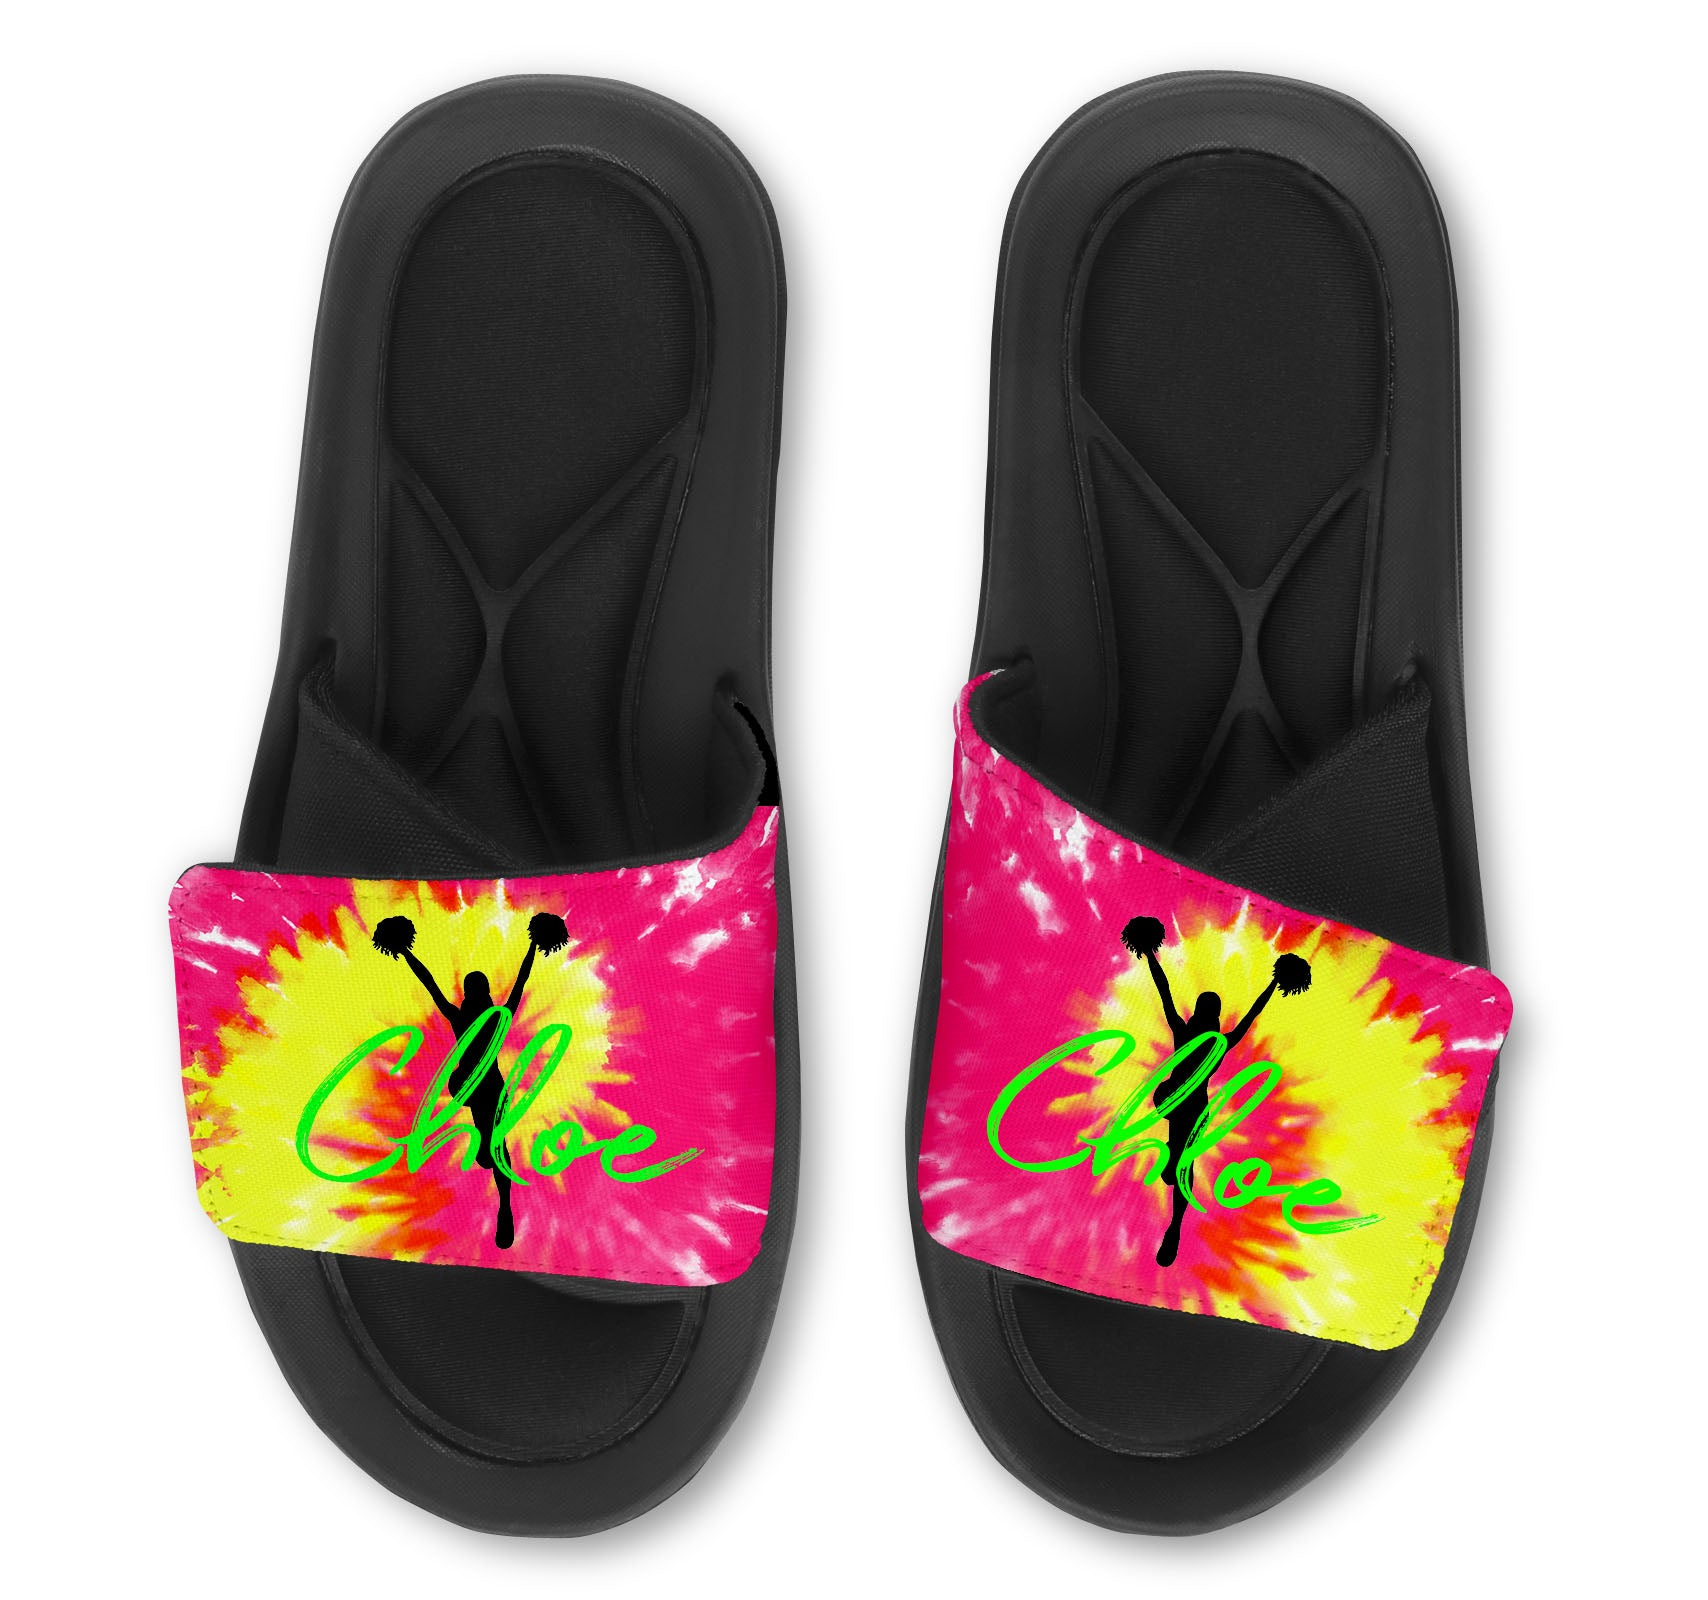 Cheerleader Tie Dye Custom Slides / Sandals - Choose your Background!